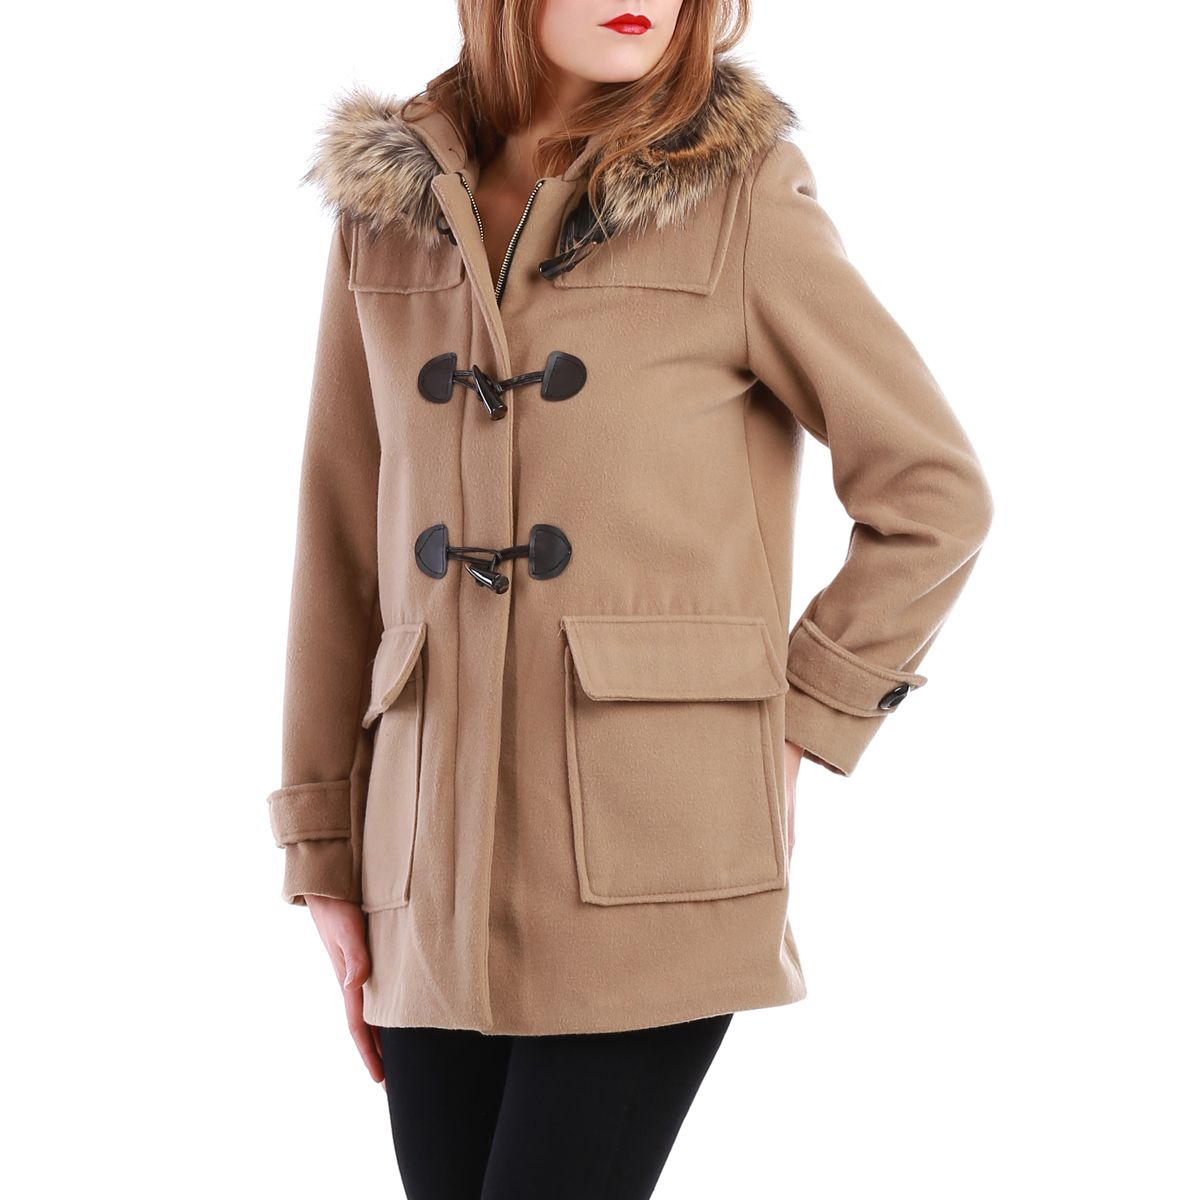 manteau beige style duffle coat avec capuche fourrure pas cher la modeuse. Black Bedroom Furniture Sets. Home Design Ideas